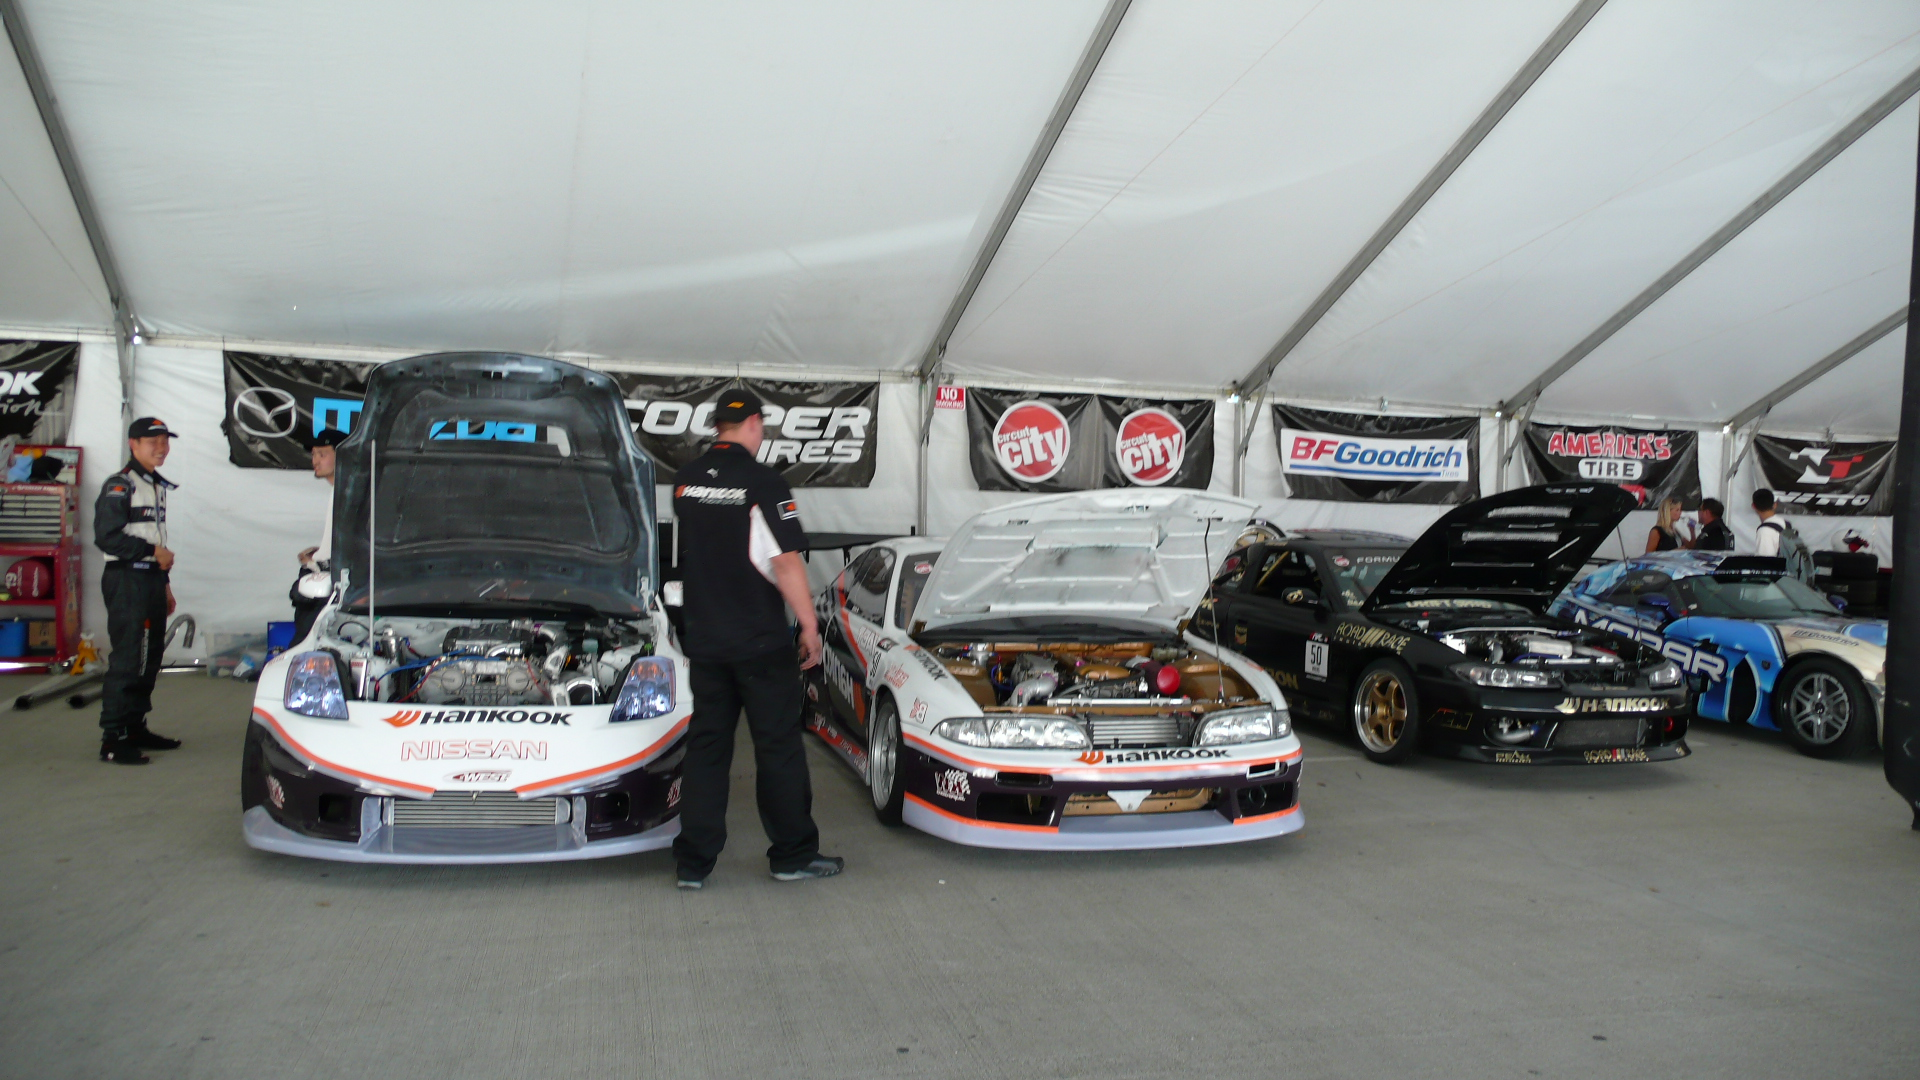 Team Drift Pits